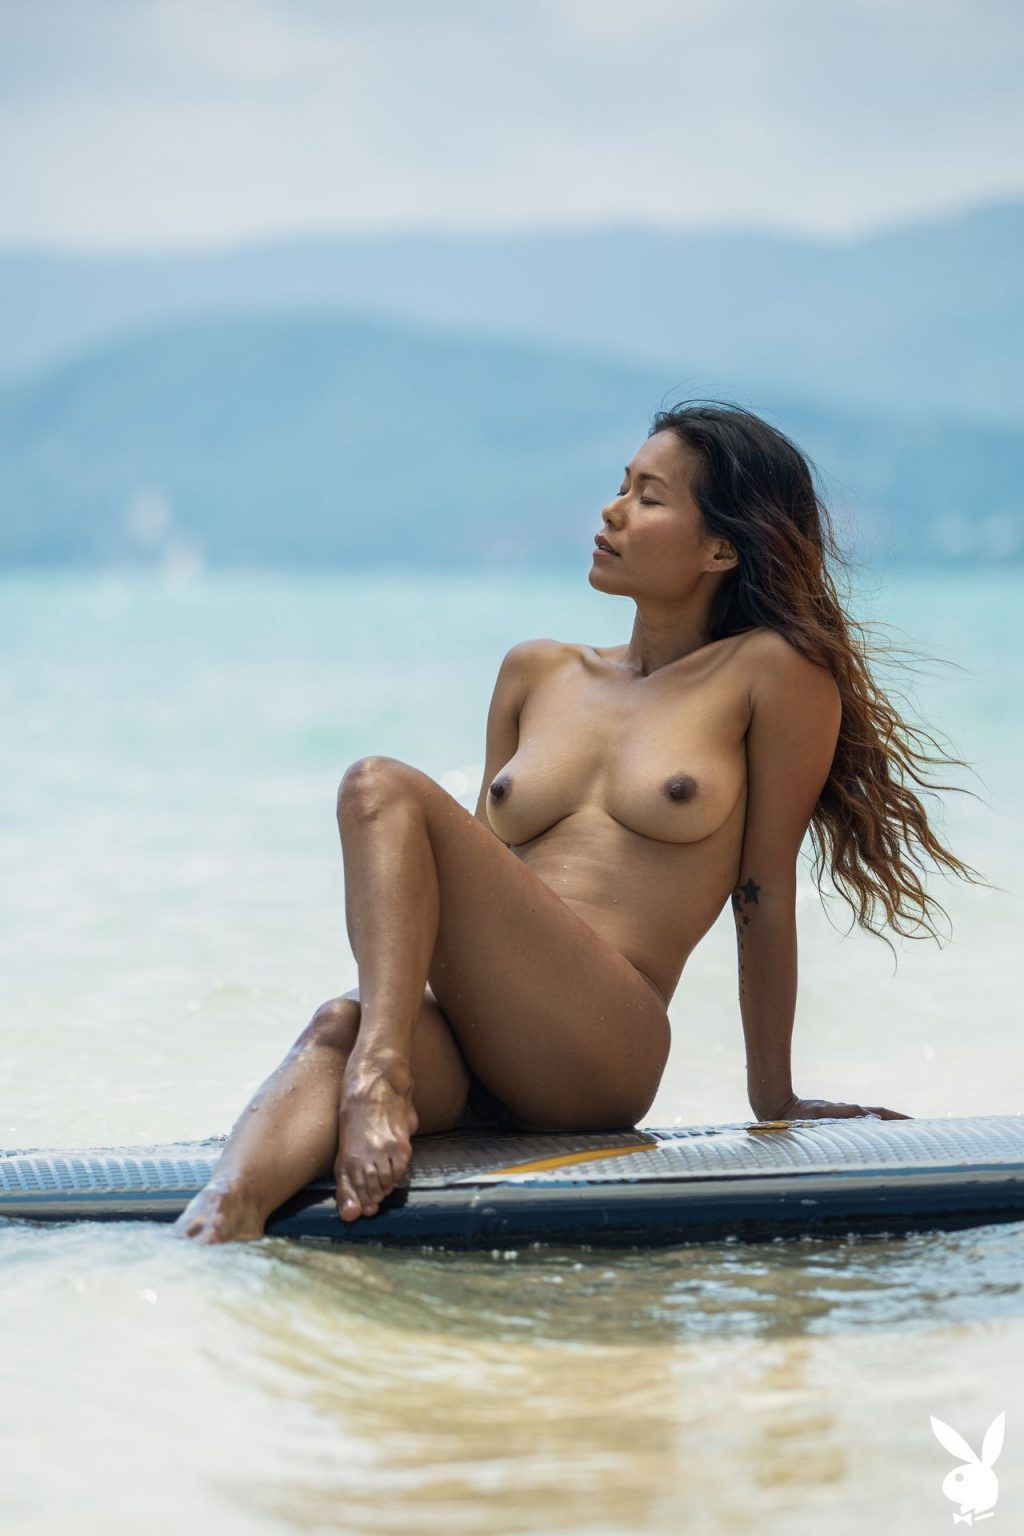 Swimwear Hot Model Surfer Babes Nude Png